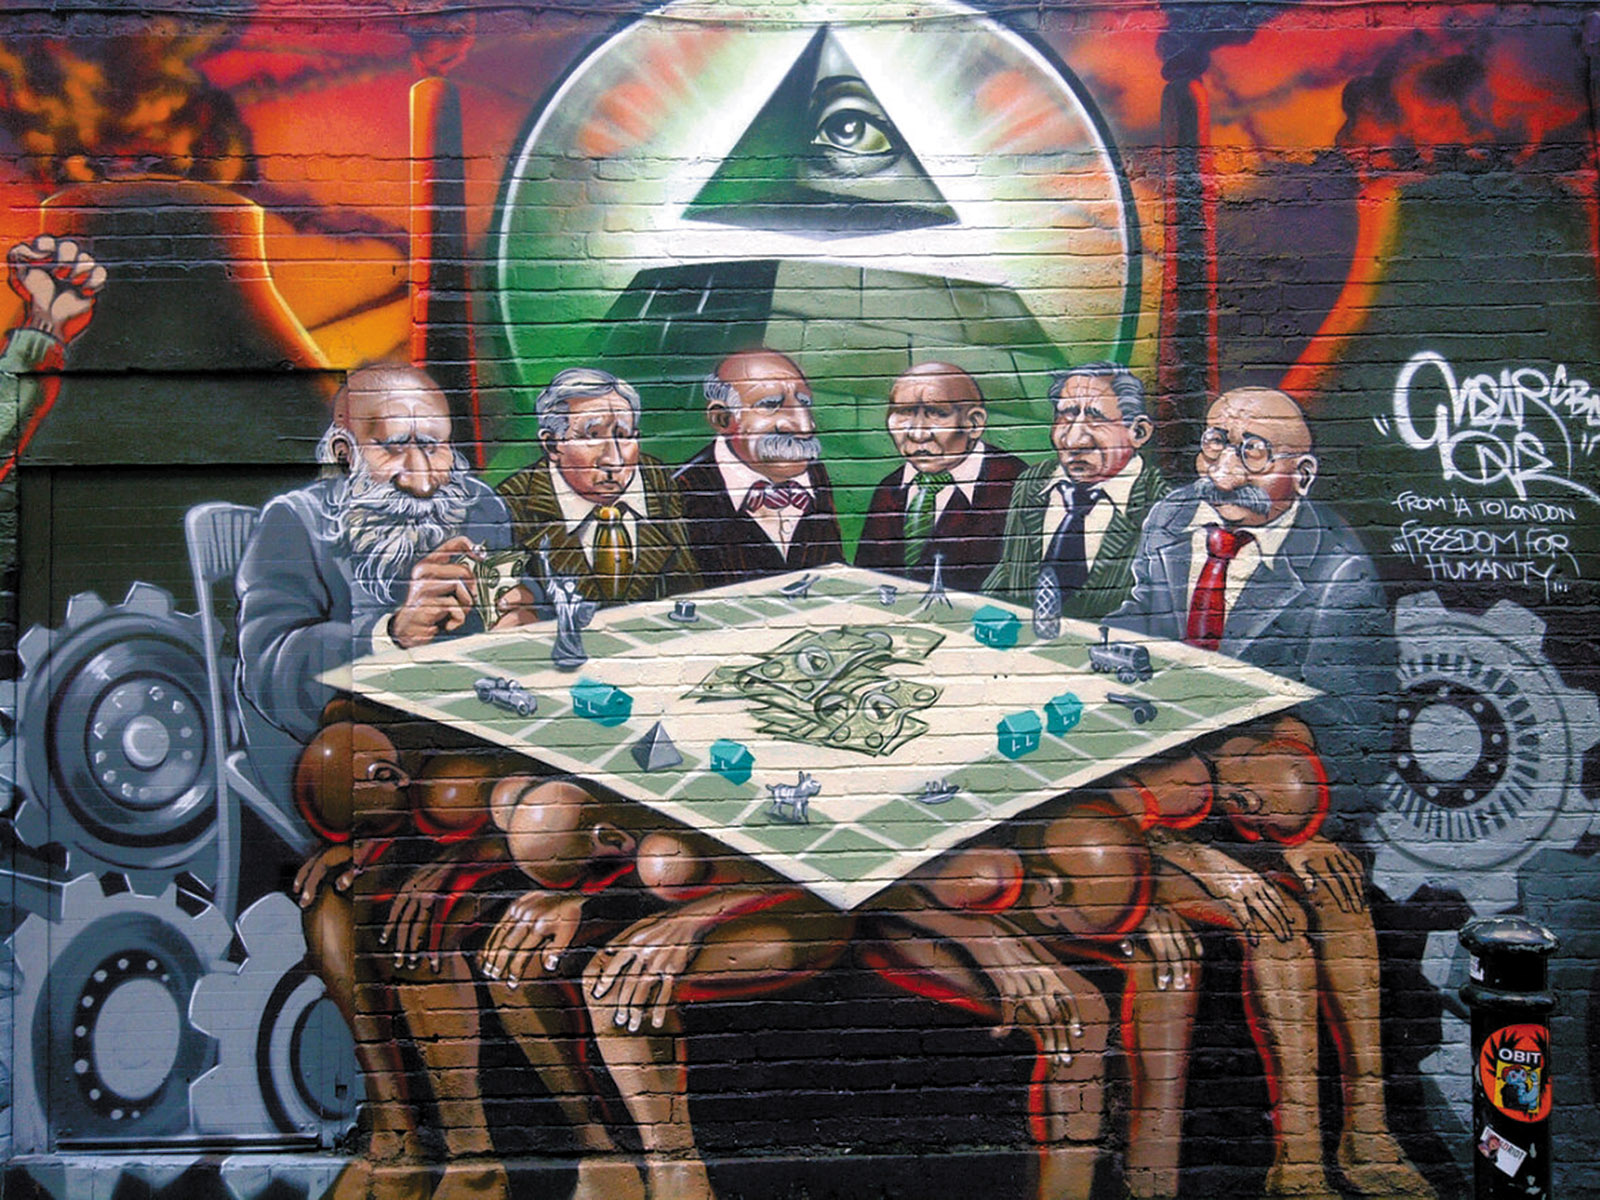 A mural in London's East End by the street artist Kalen Ockerman, known as Mear One. It was erased in 2012 because of concerns that it was anti-Semitic.